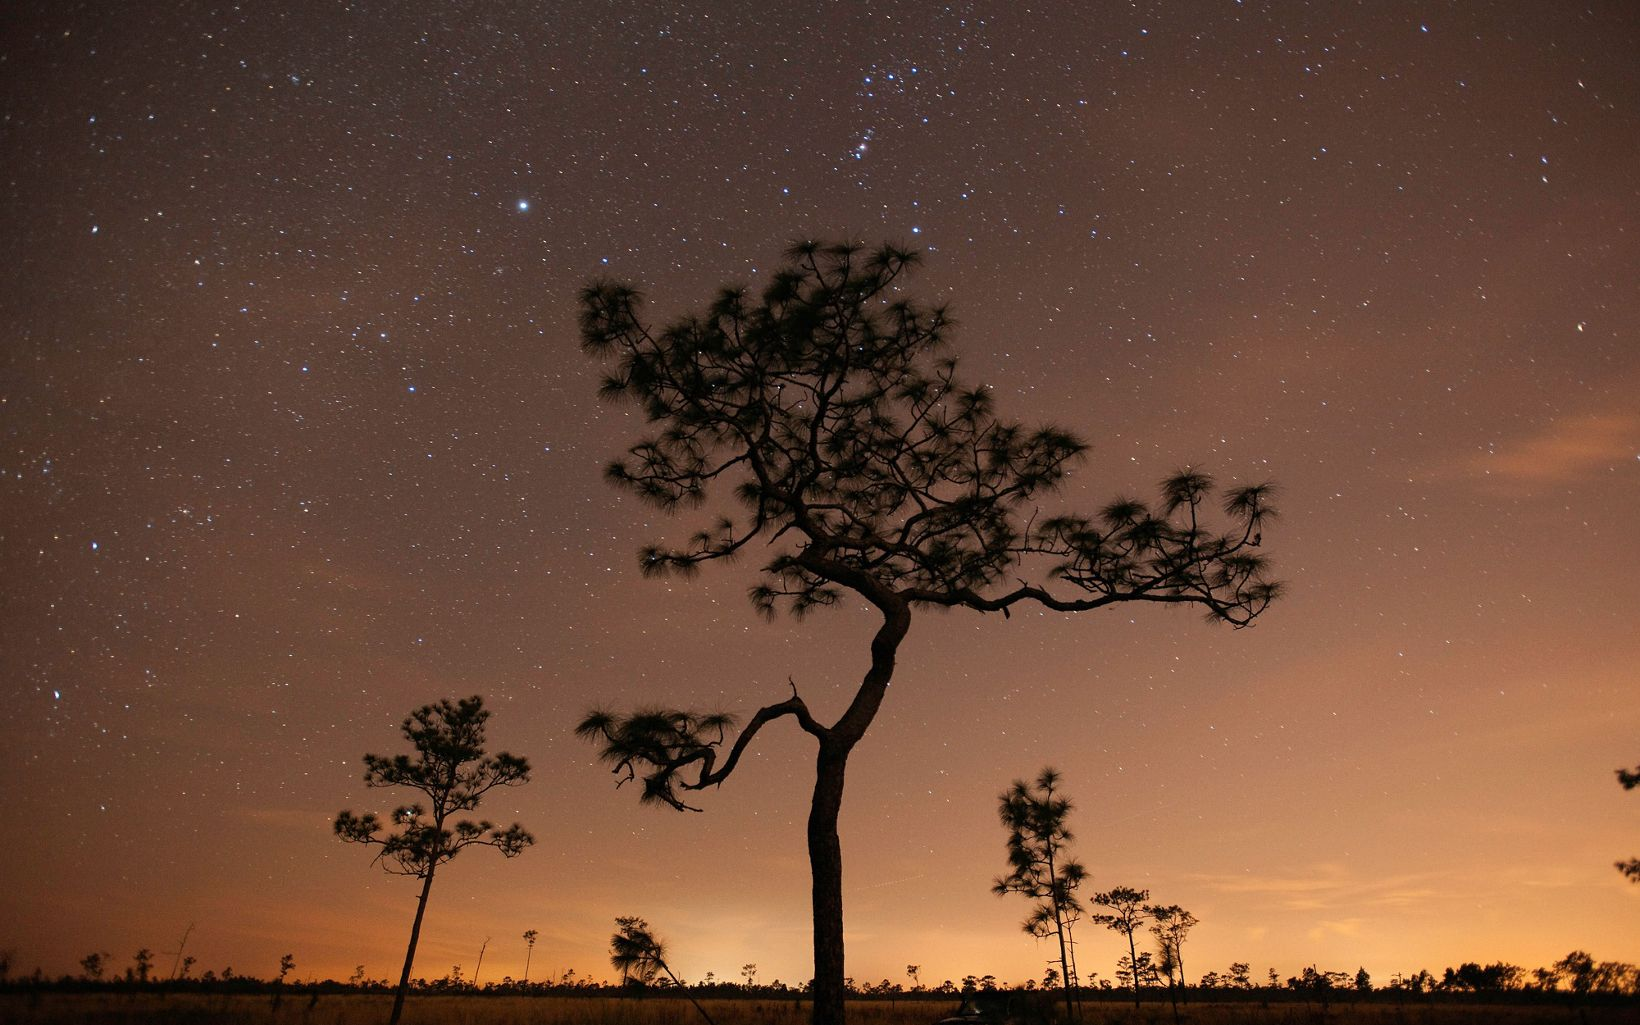 A longleaf pine tree silhouetted against a pink and purple starry sky at dusk.